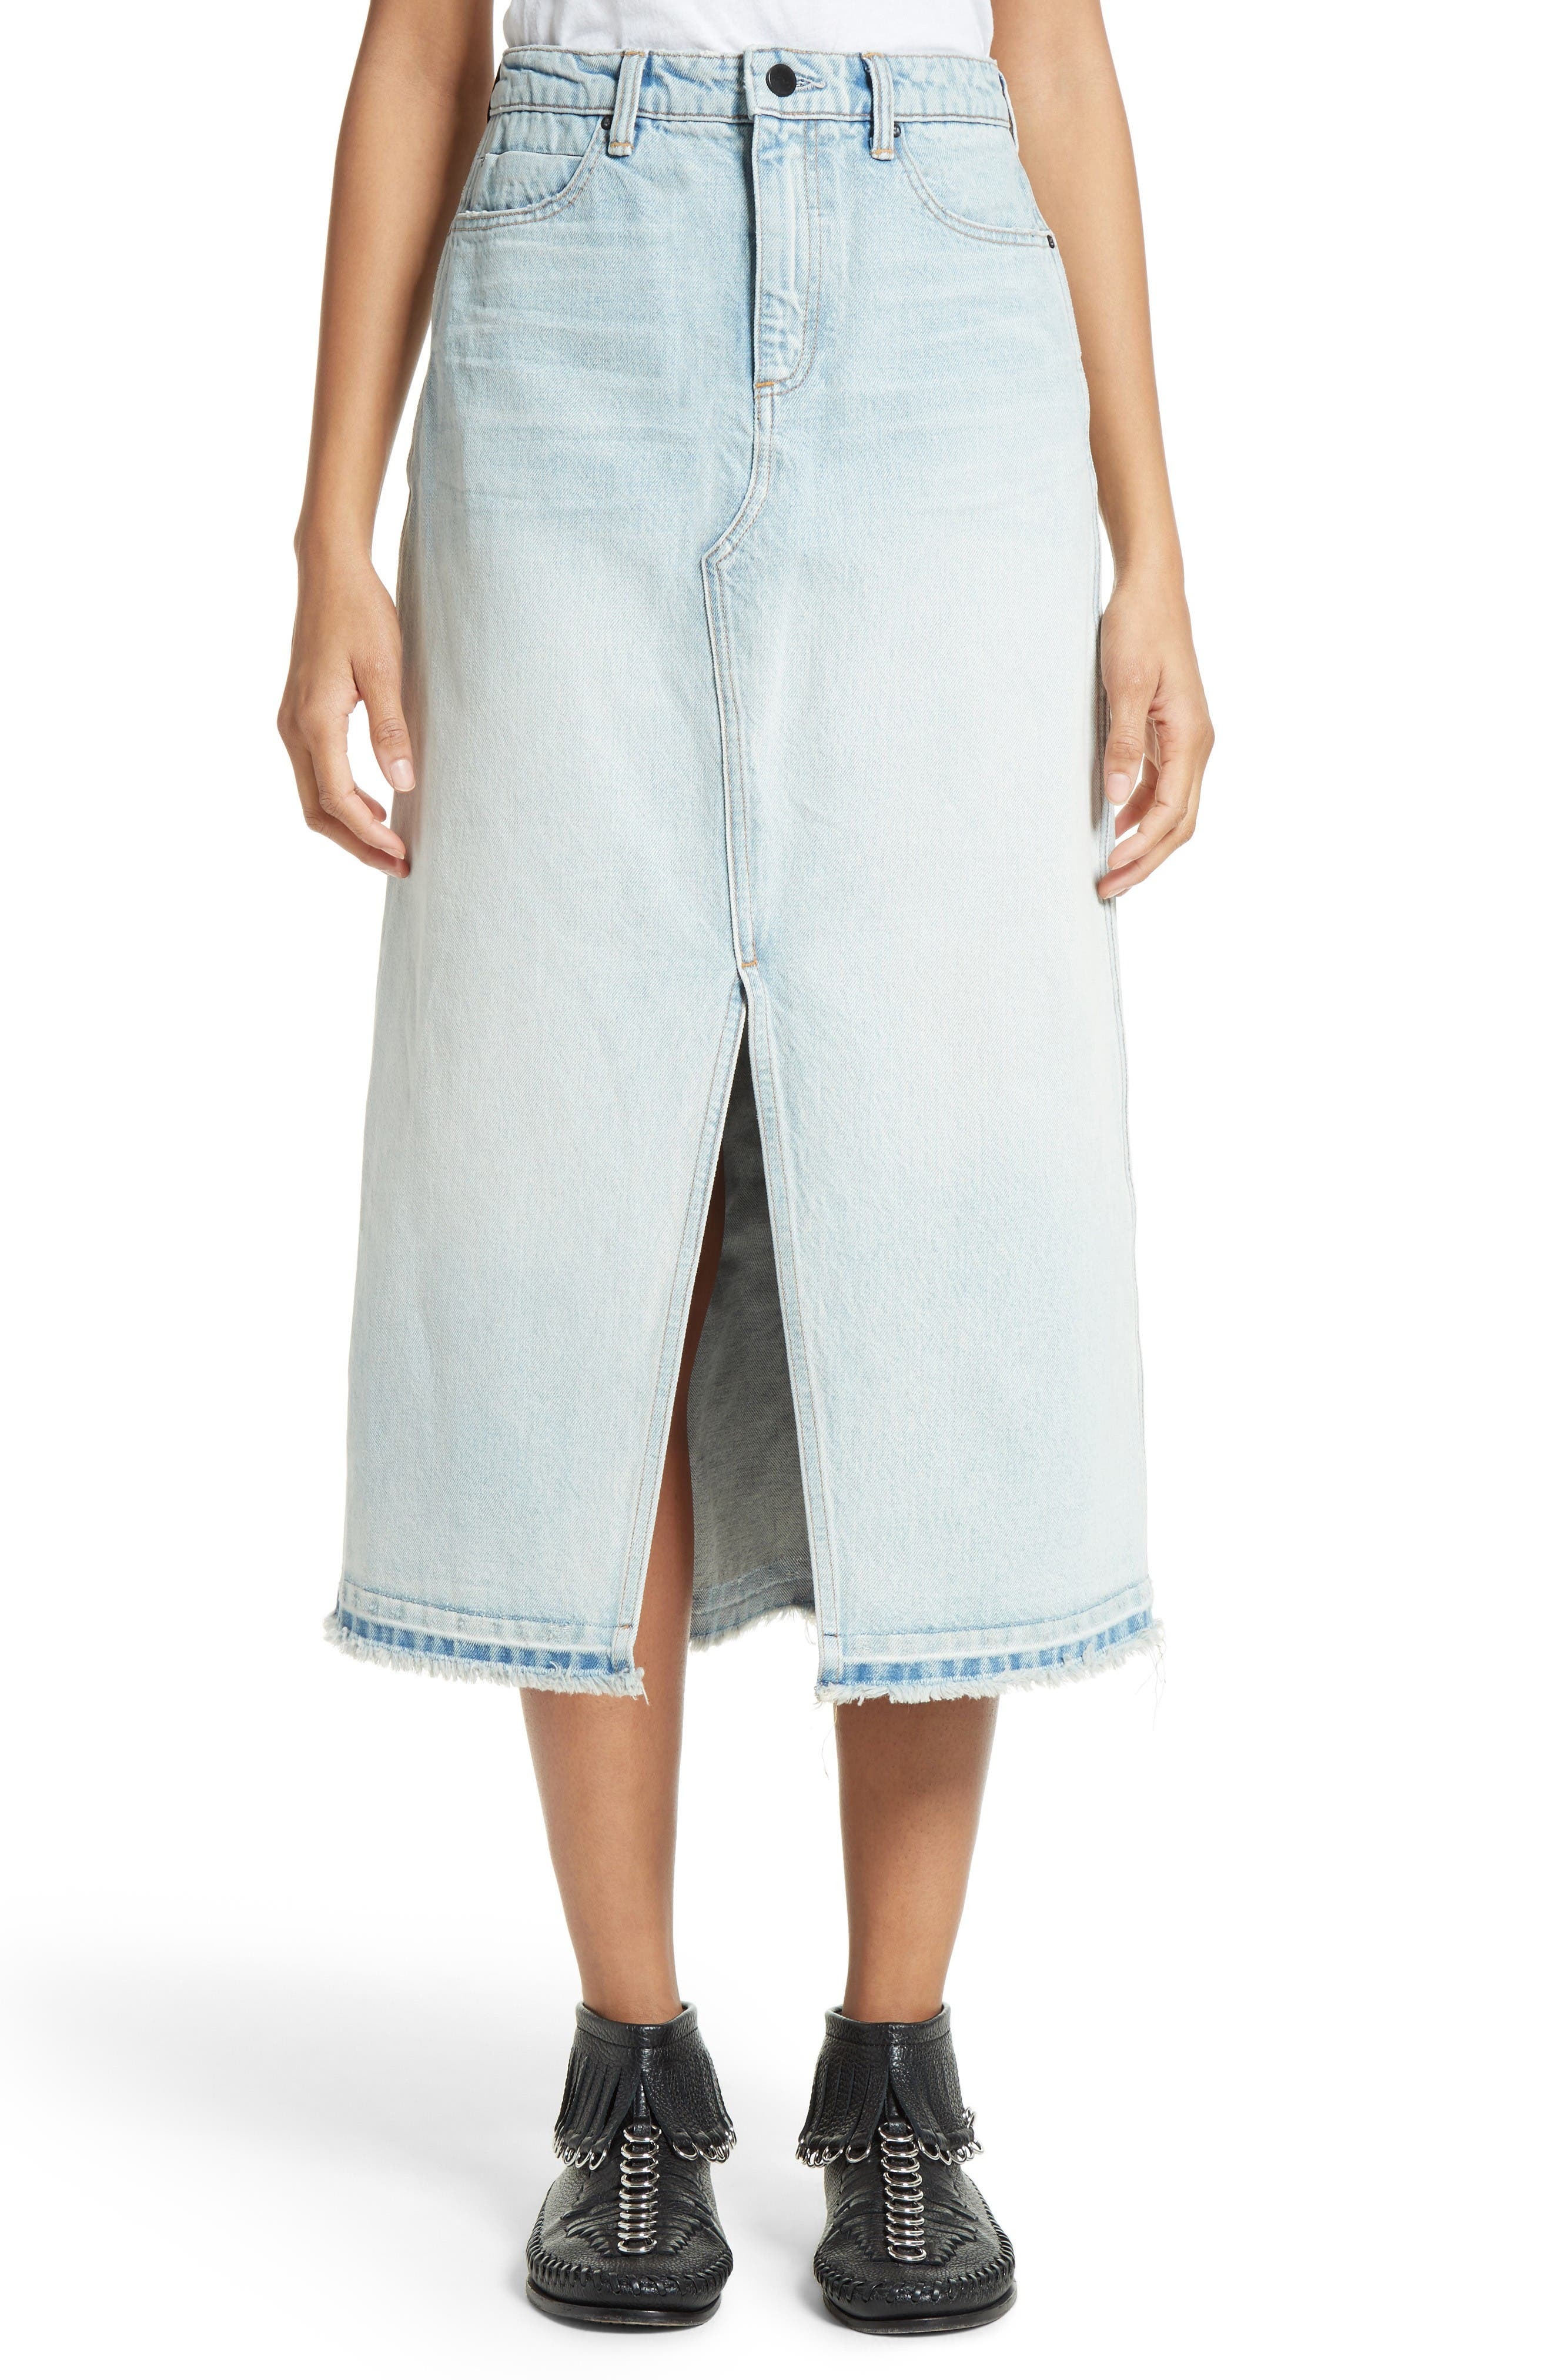 Denim x Alexander Wang Bleached Denim Midi Skirt